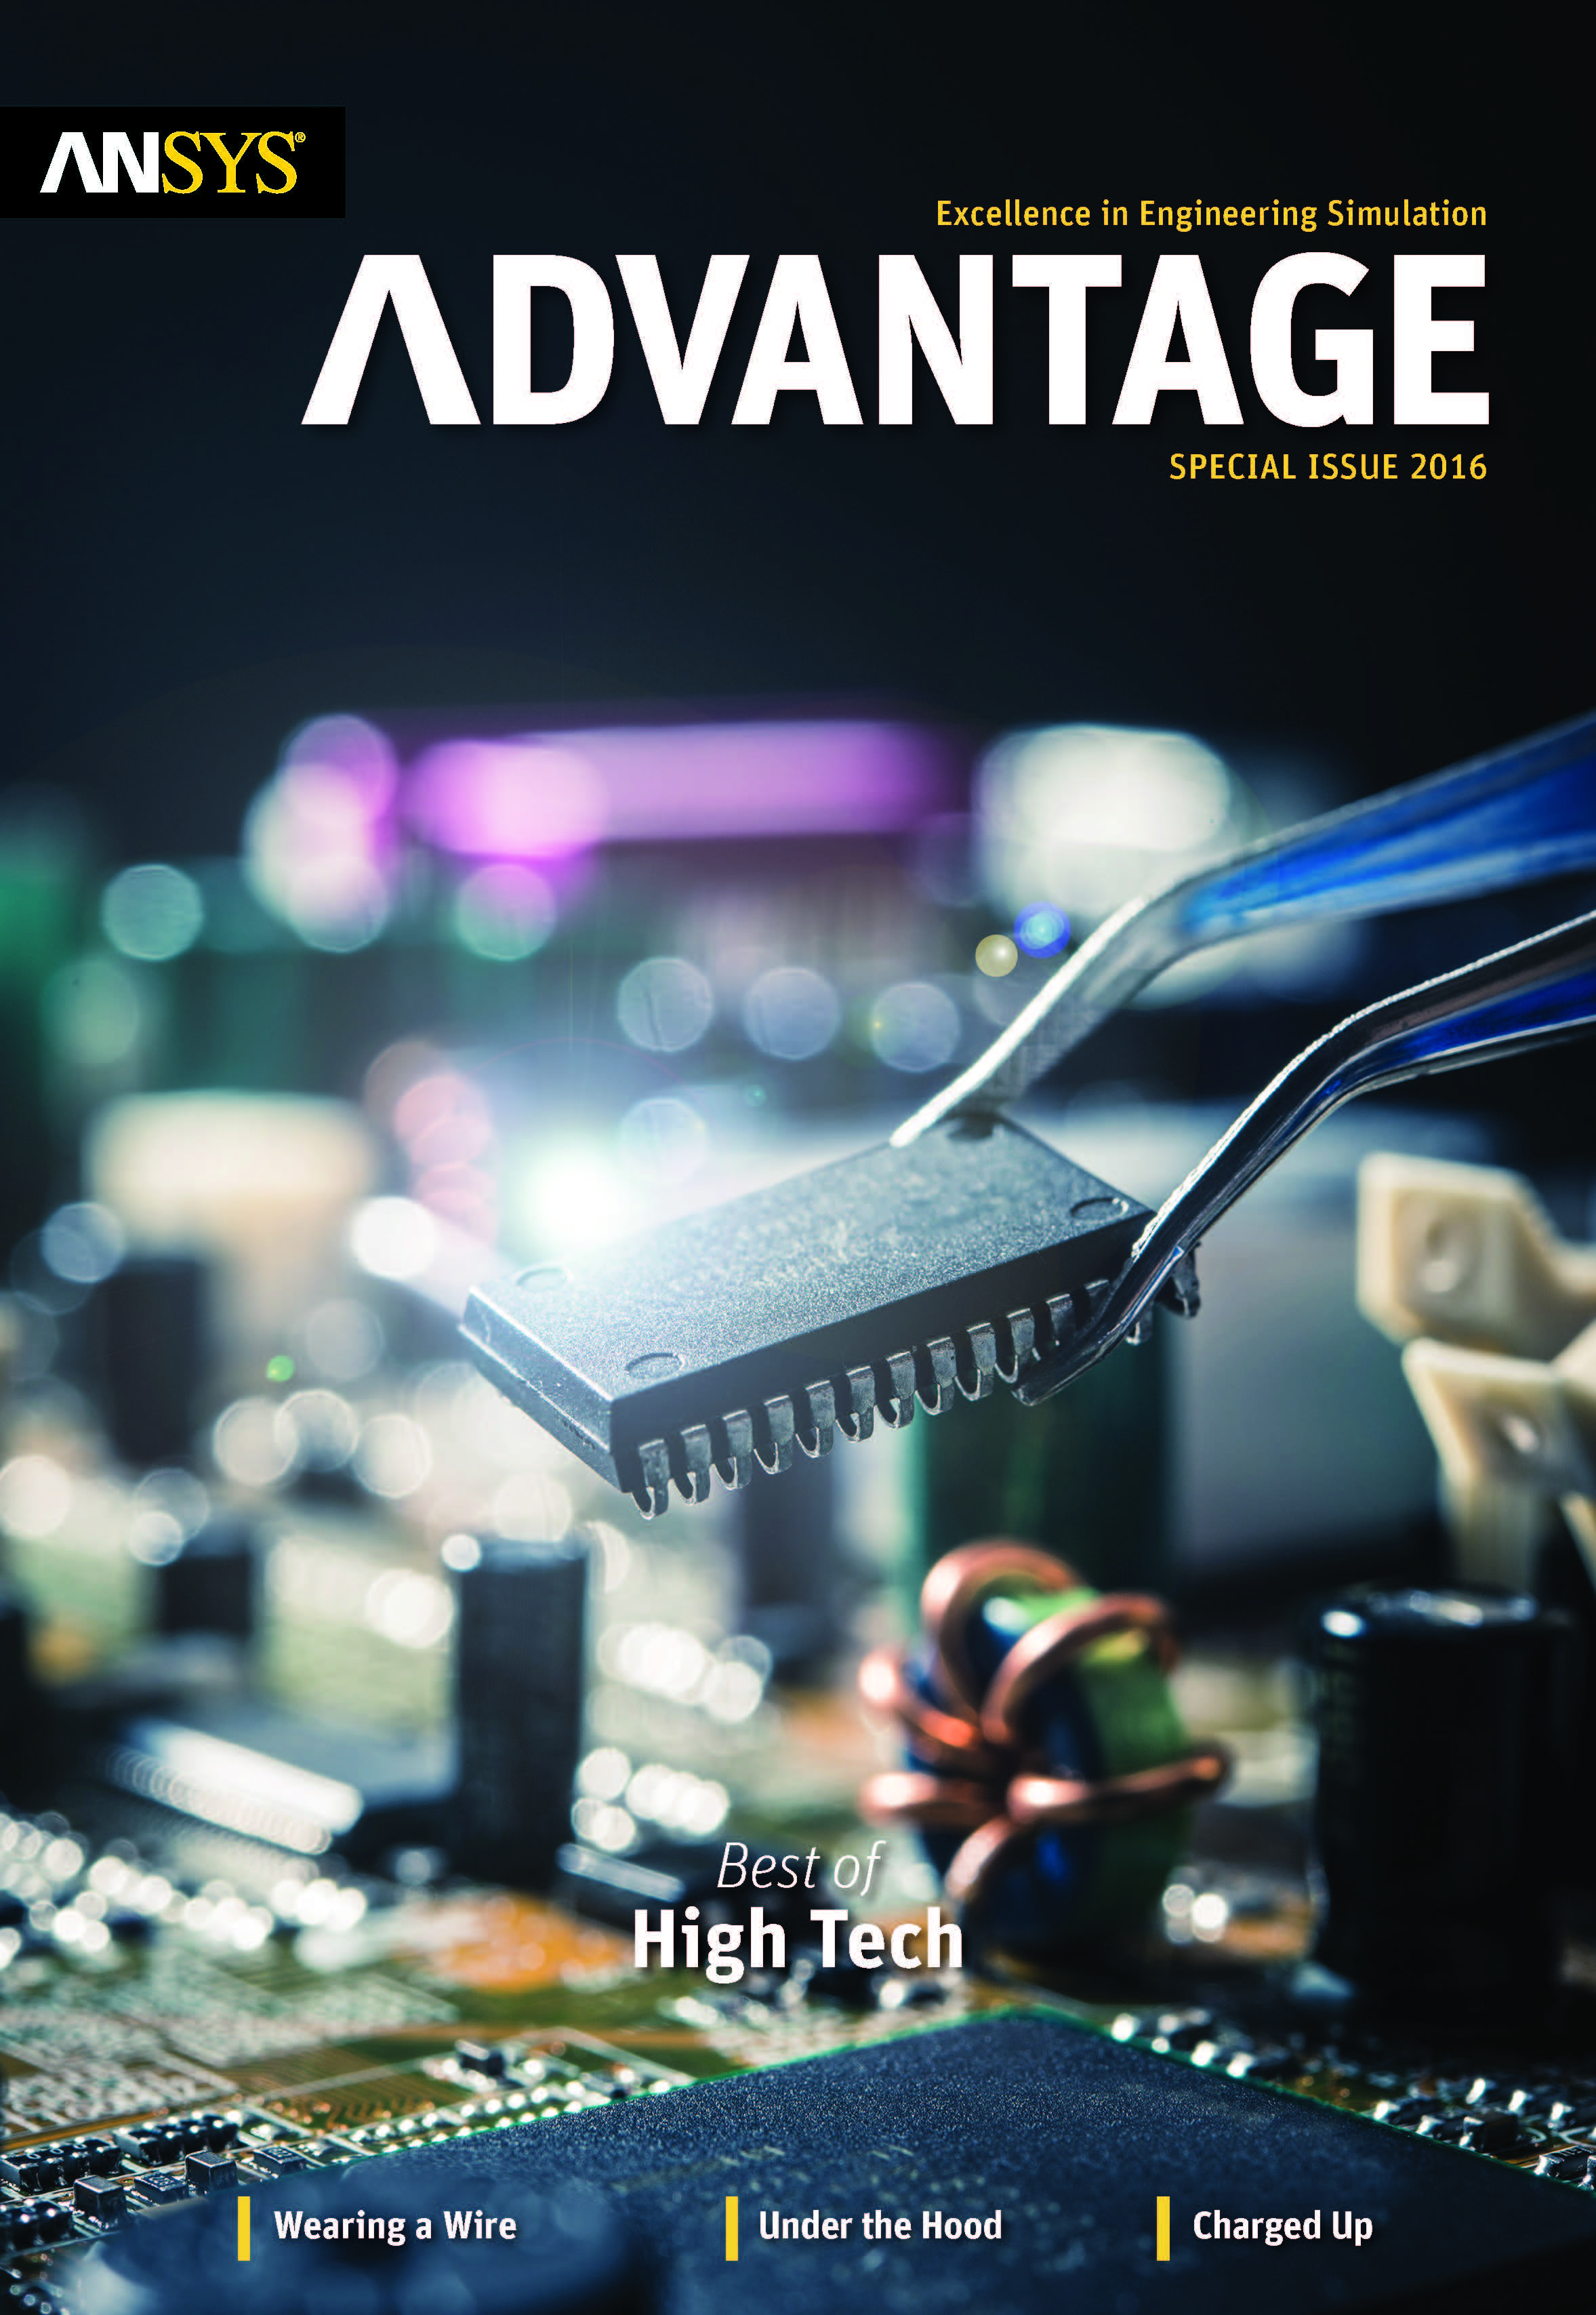 ANSYS Advantage Best of High Tech. Special ISSUE 2016